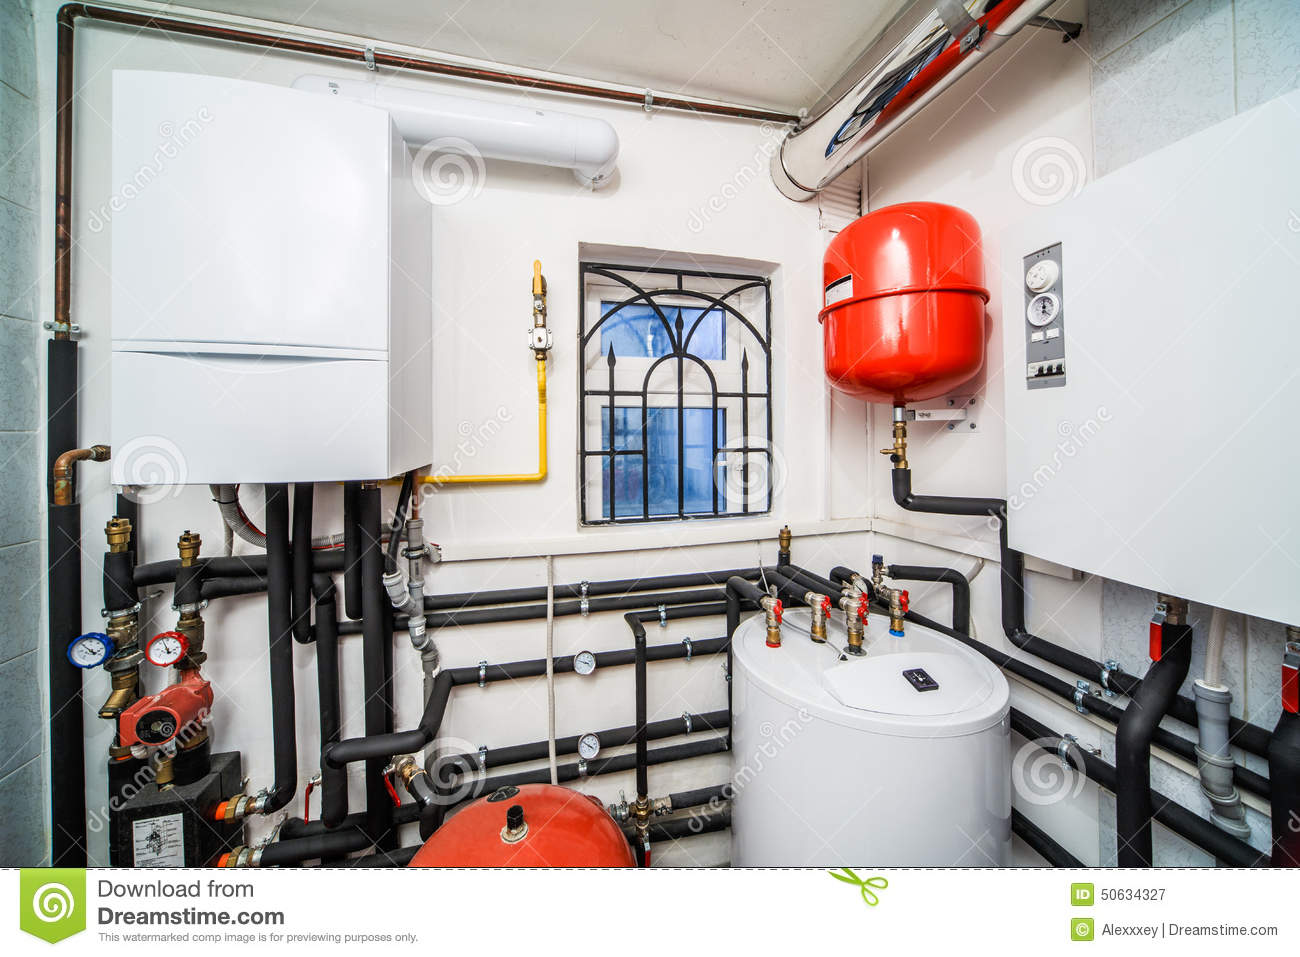 Interior Household Boiler With Gas And Electric Boilers Stock Image ...